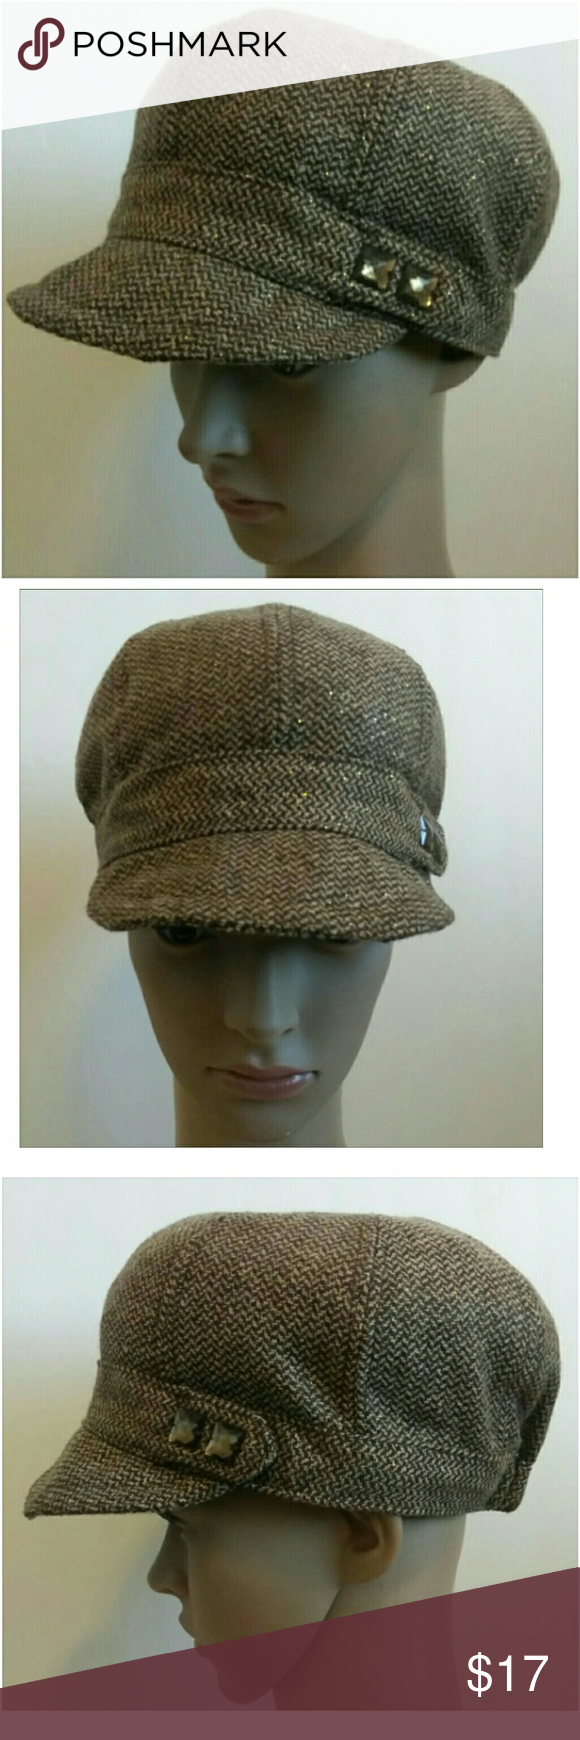 Herringbone Brown Tan Shimmery Newsboy Cabbie Hat Women s Cabbie Hat Brown  Herringbone w  Gold Metallic Shimmer One size fits most Colors may appear  ... 008f57445c45